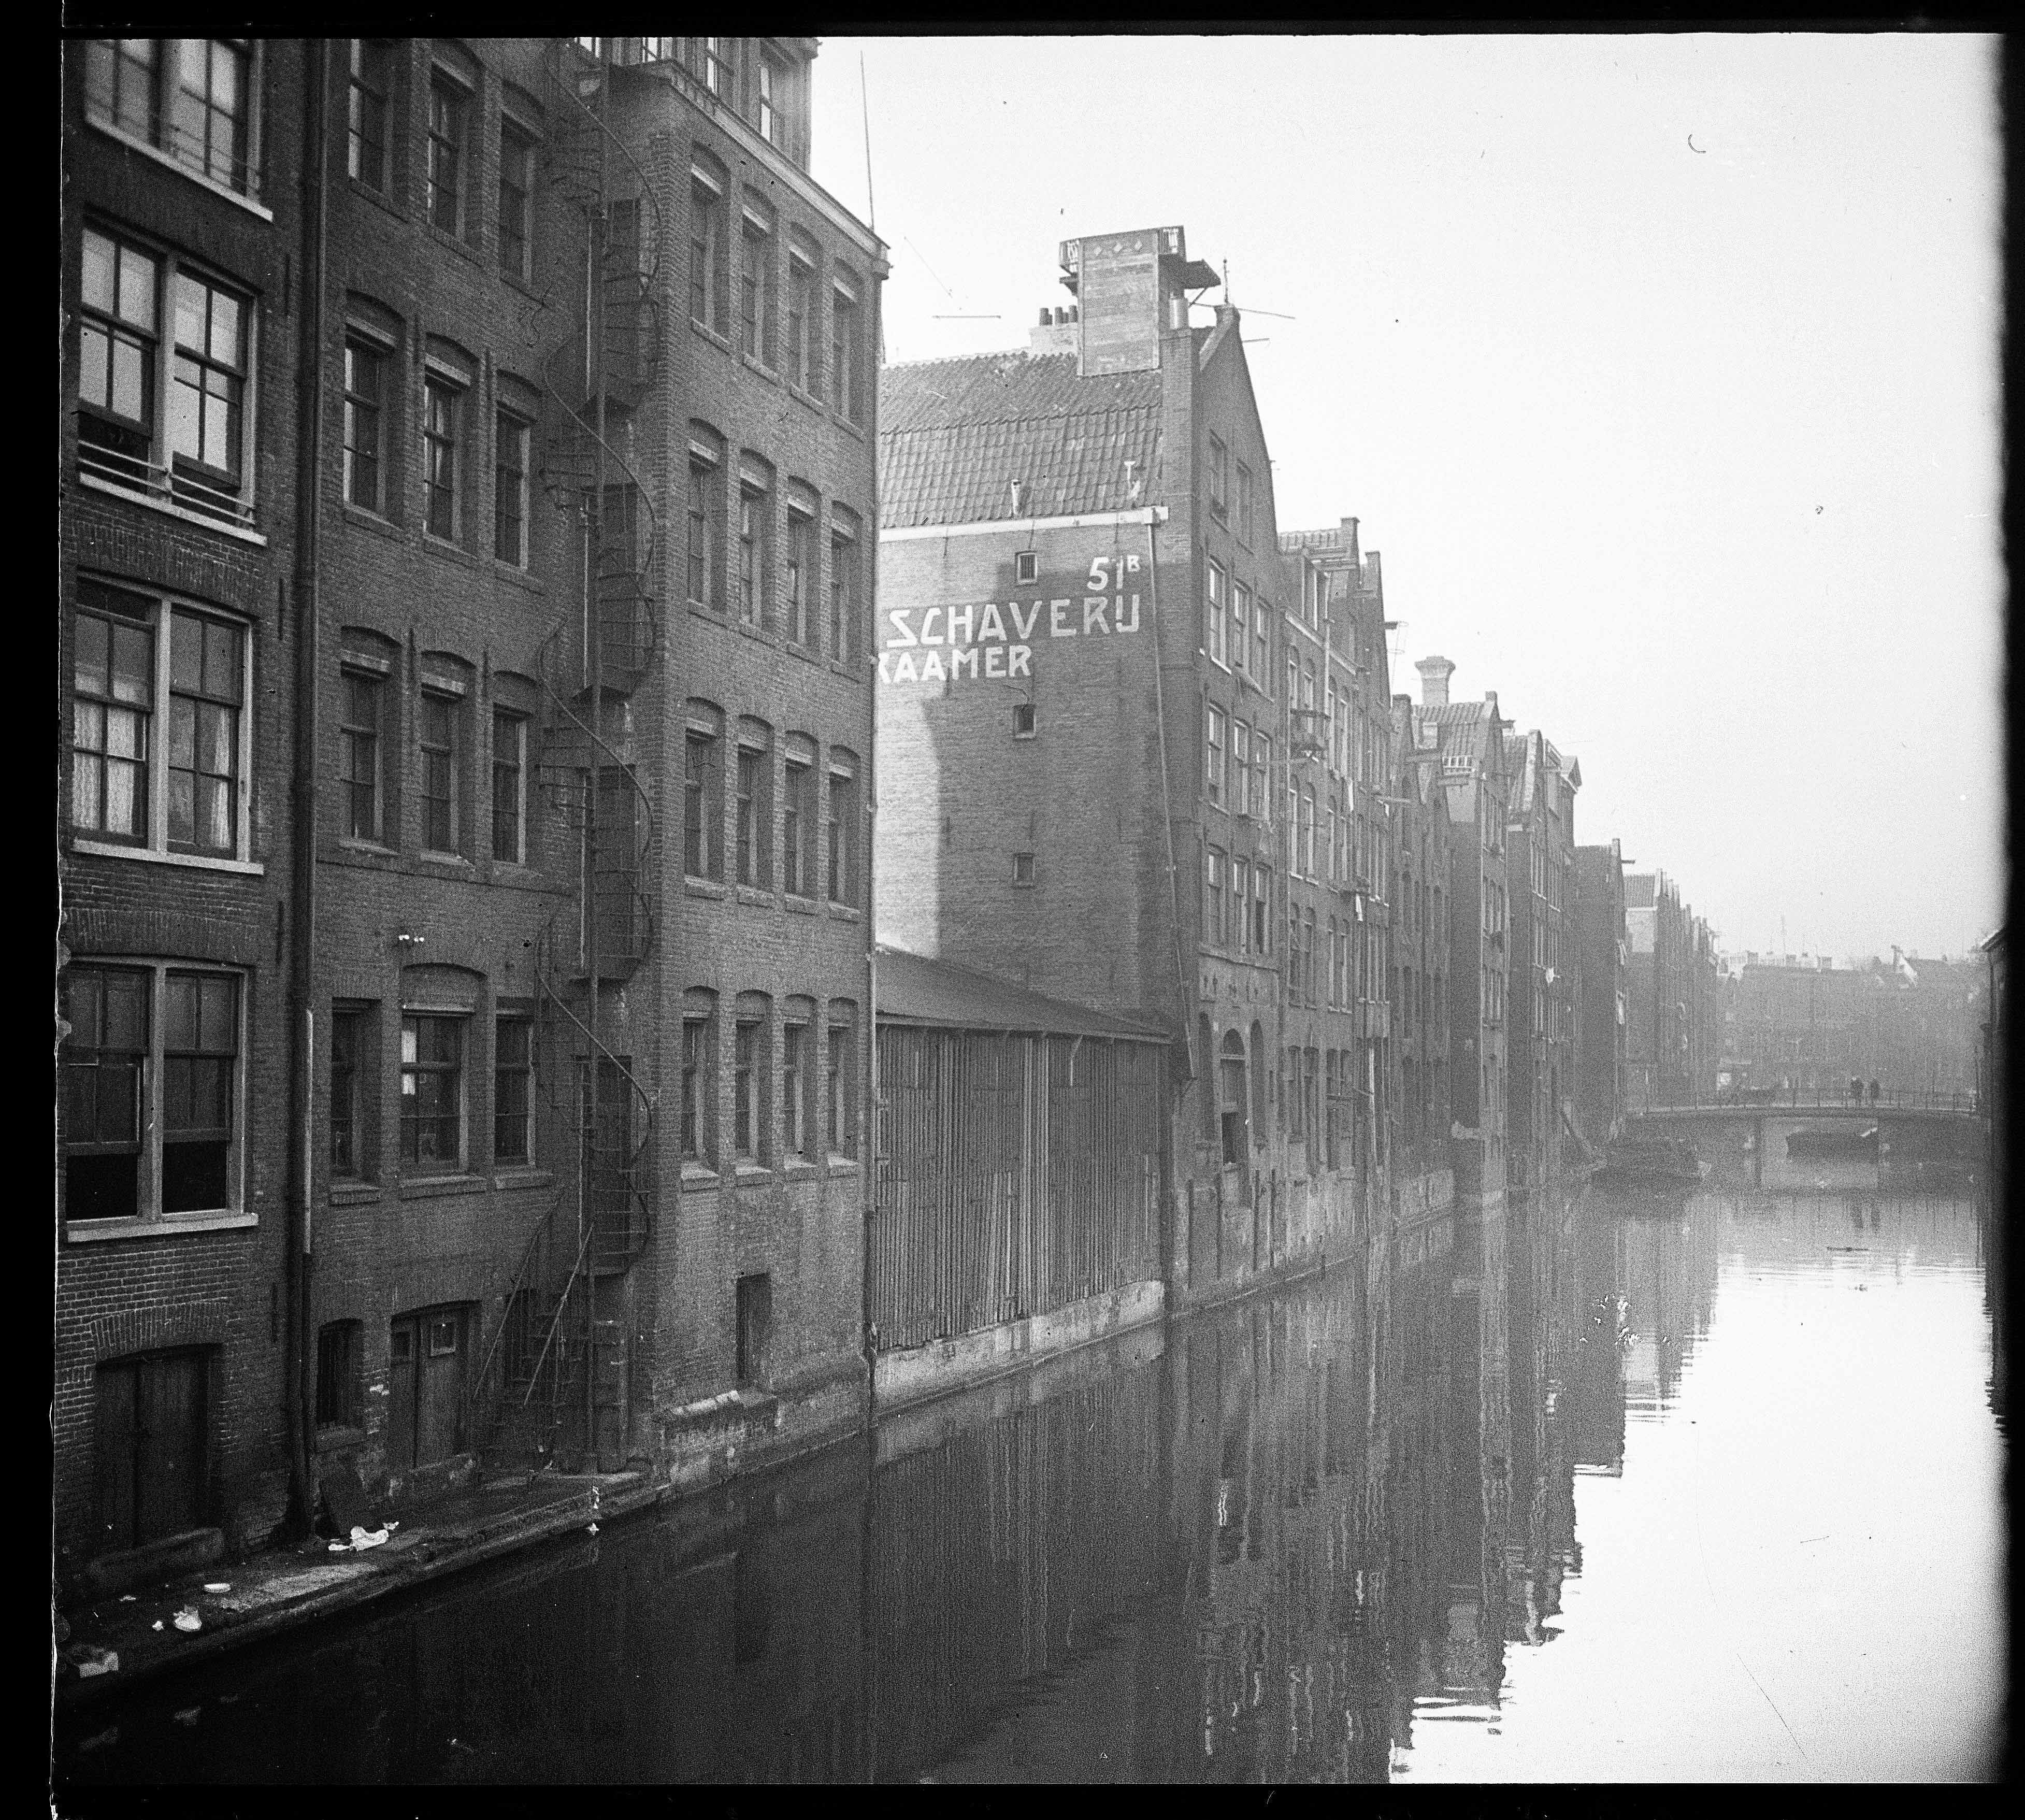 1930 A View Of The Joden Houttuinen In Amsterdam Amsterdam